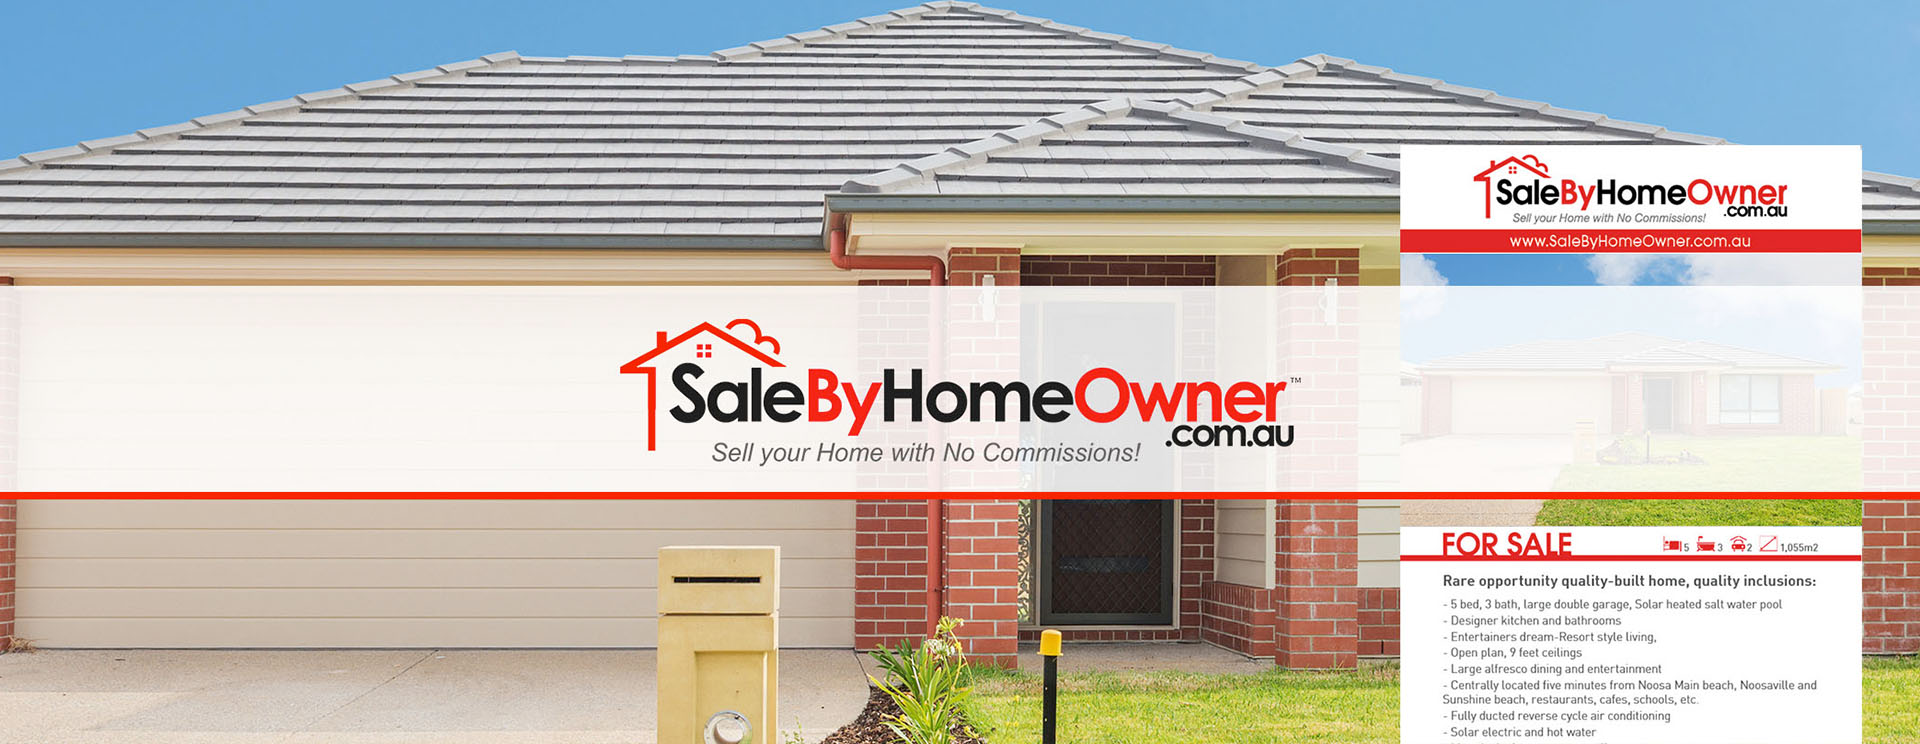 How to Advertise on realestate.com.au